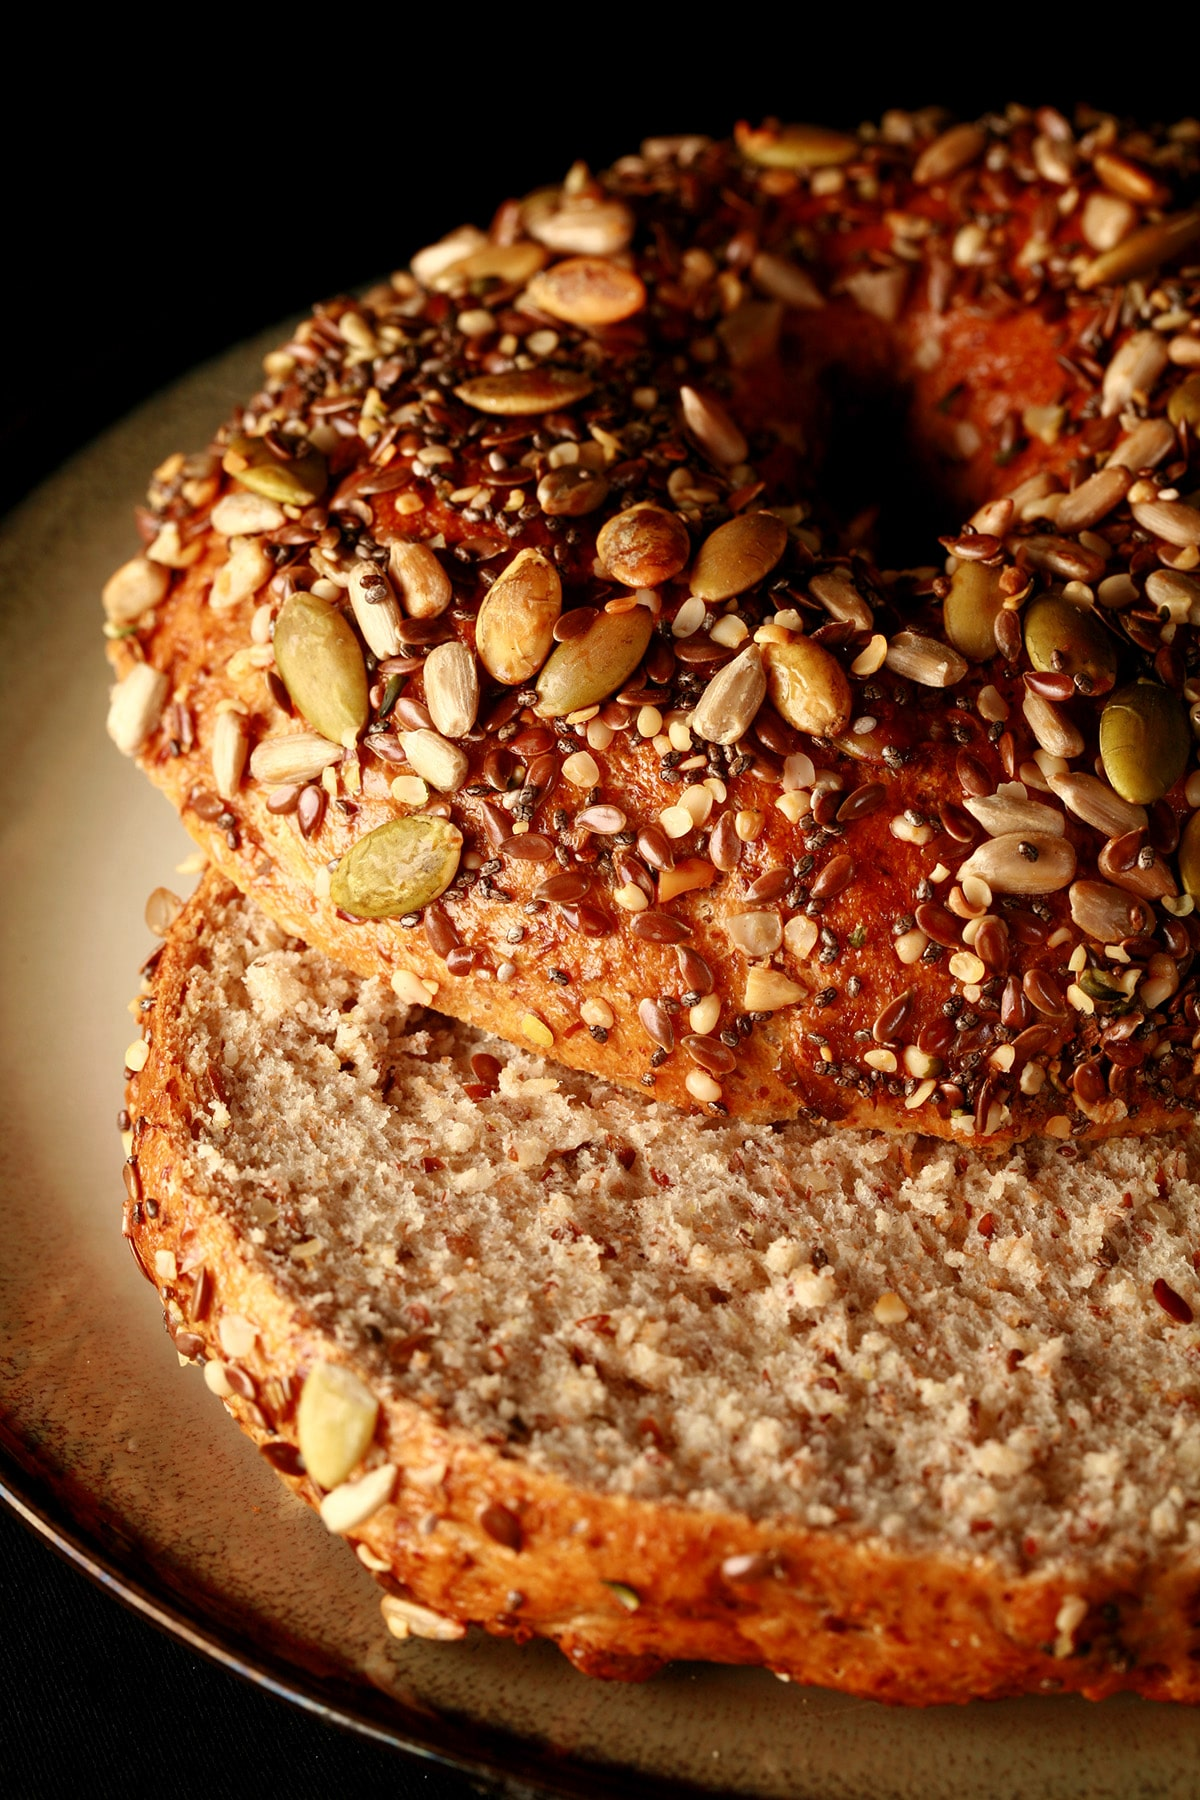 A whole wheat and flax bagel, sliced and served on a small plate. The top side of the bagel is covered in a mix of seeds - pumpkin, sunflower, sesame, chia, and poppy.